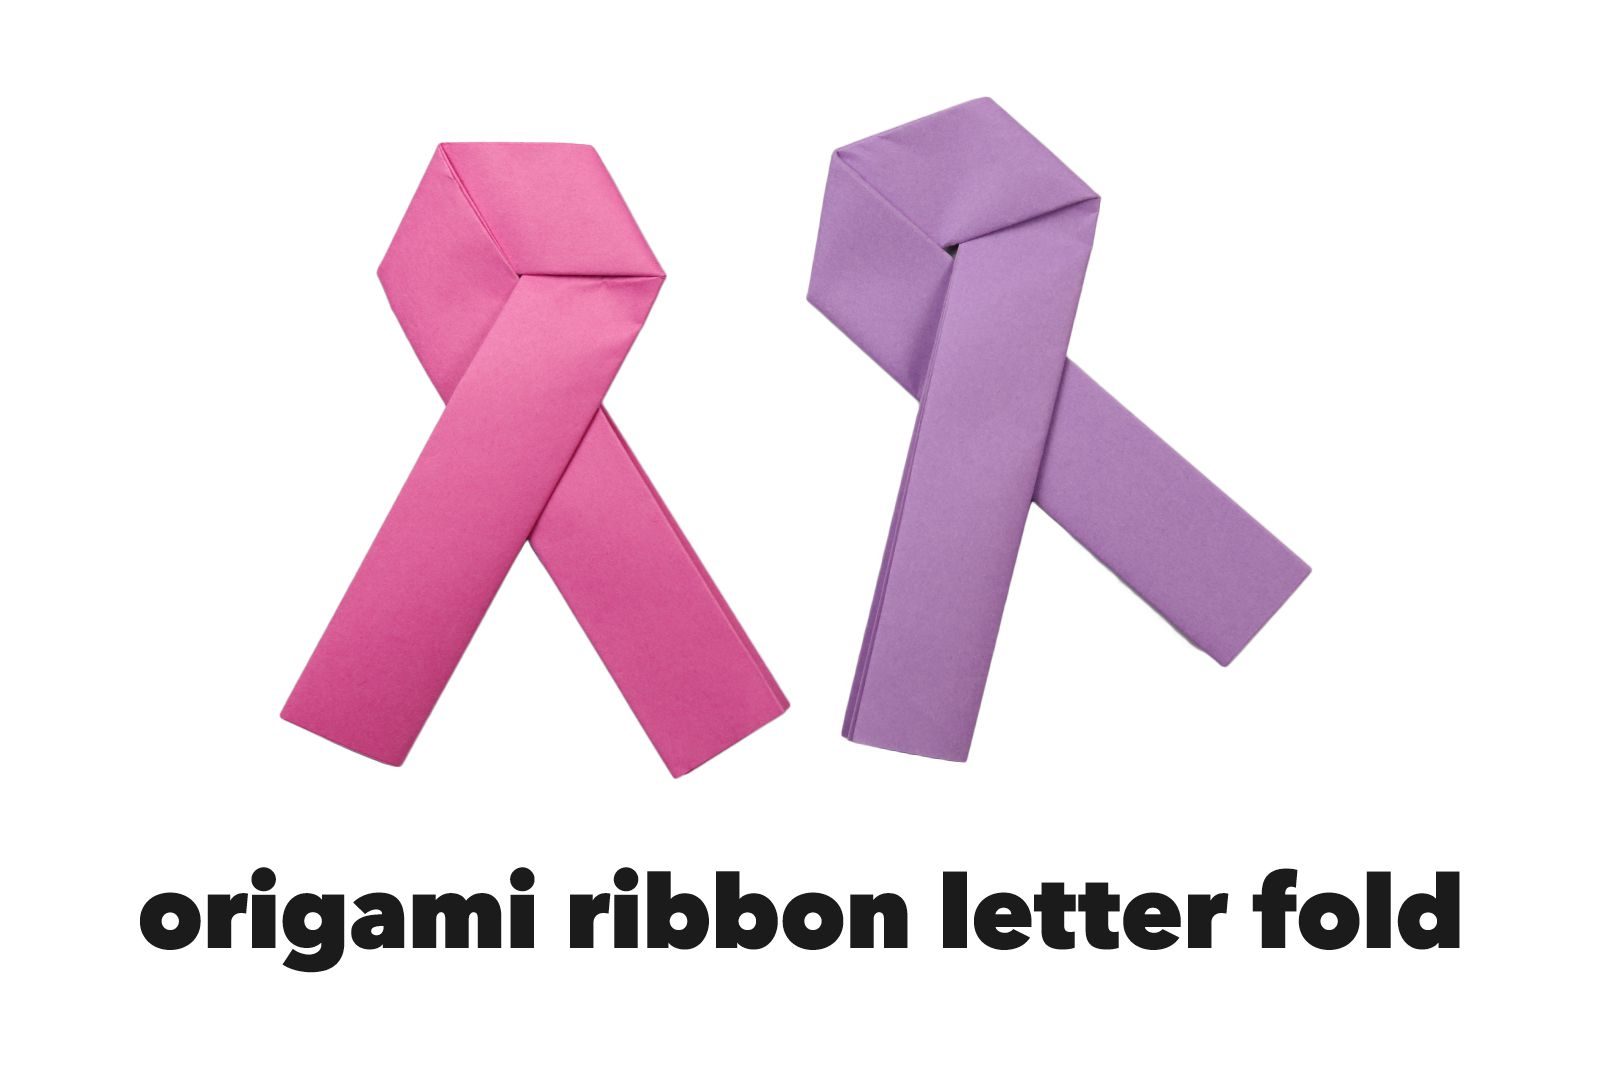 Origami bamboo letterfold folding instructions - Origami Bamboo Letterfold Folding Instructions 50